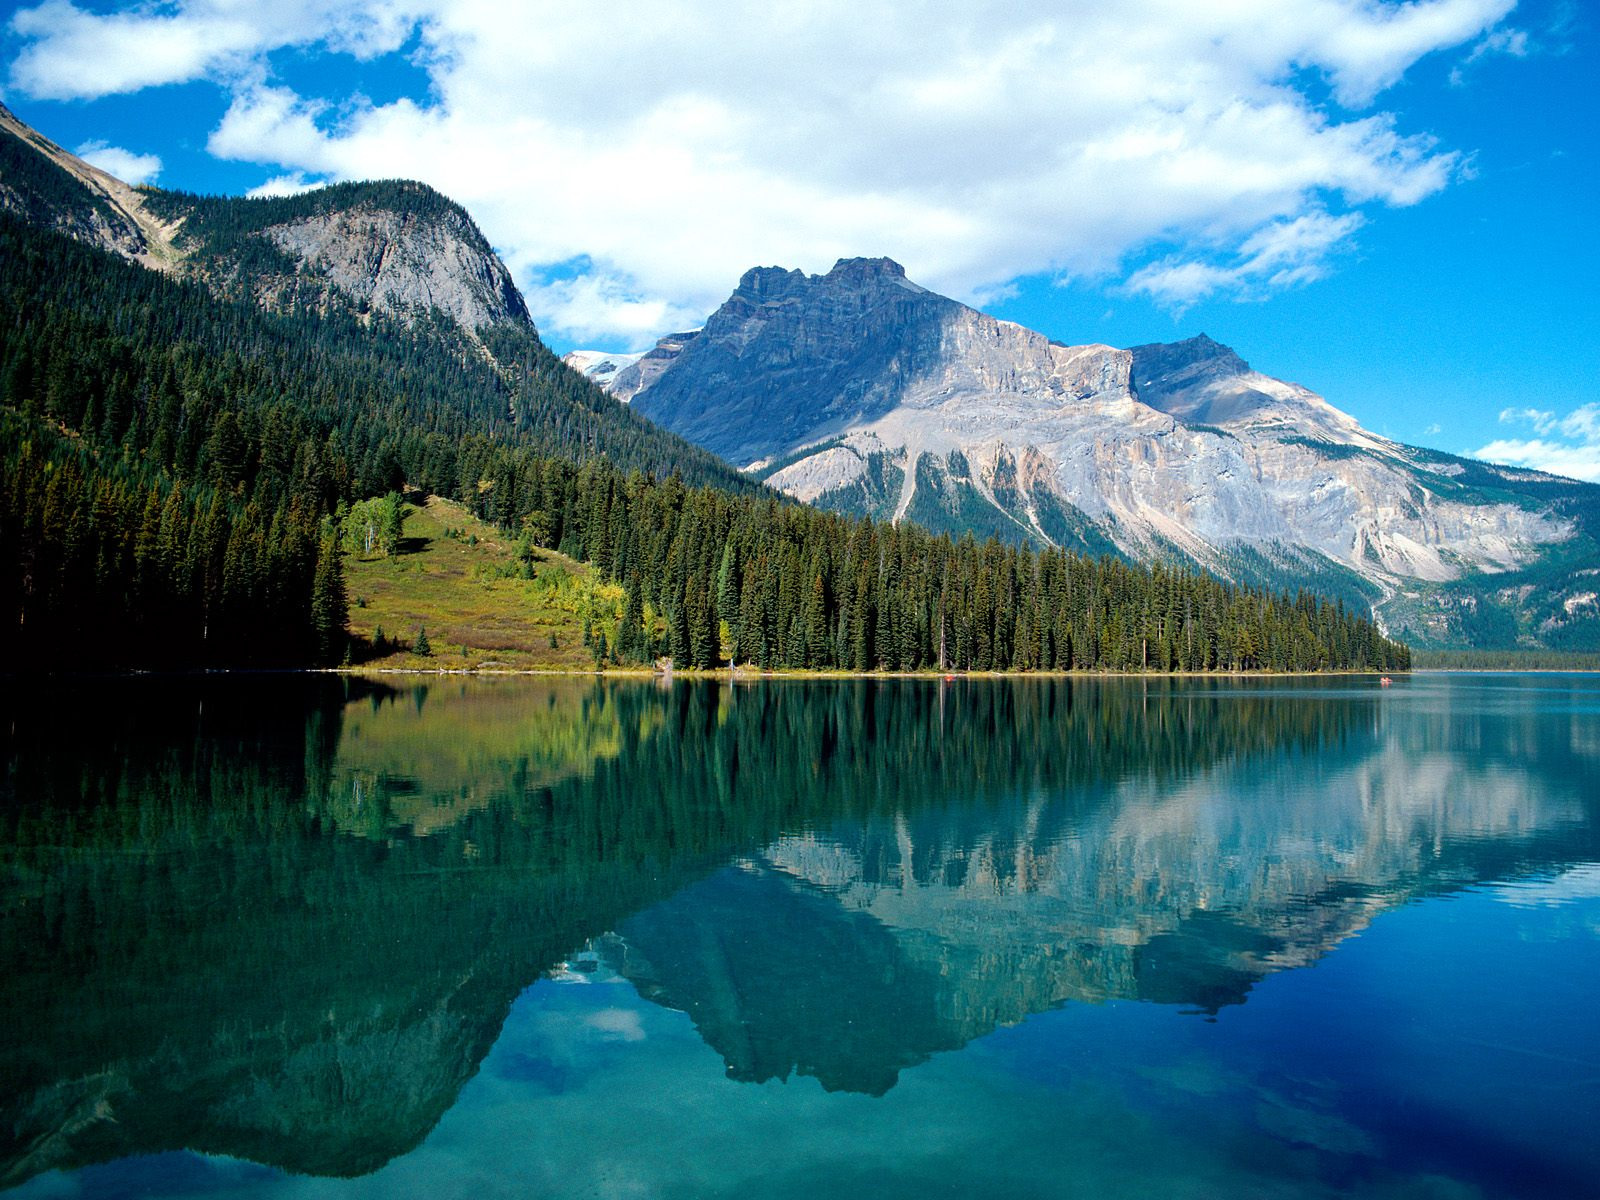 Emerald Lake Yoho National Park British Columbia Canada